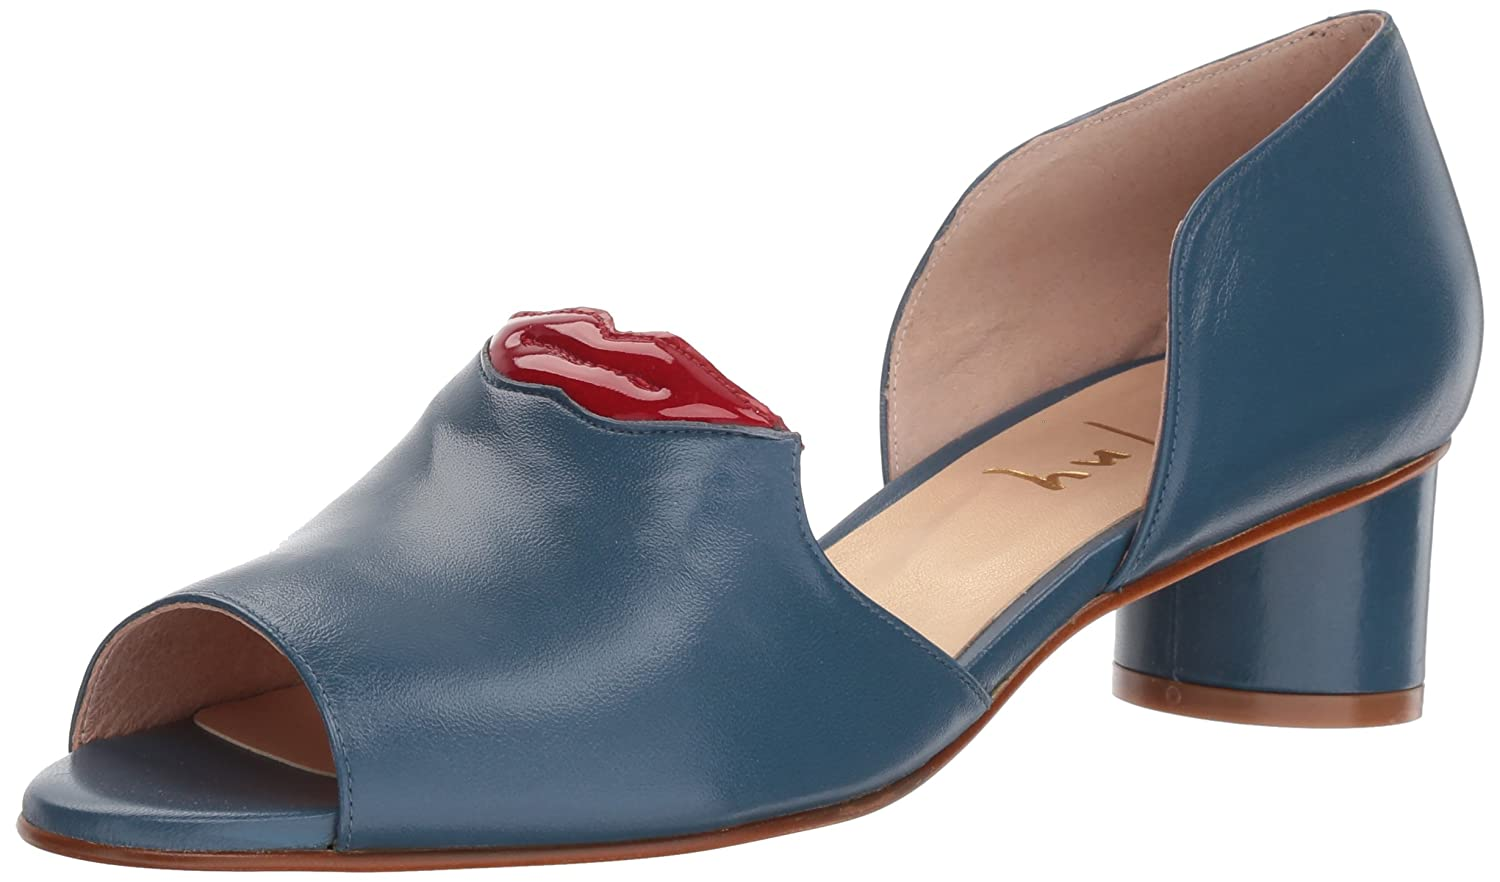 French Sole FS/NY Women's Bender Pump B0767SWXMY 6.5 B(M) US|Jeans